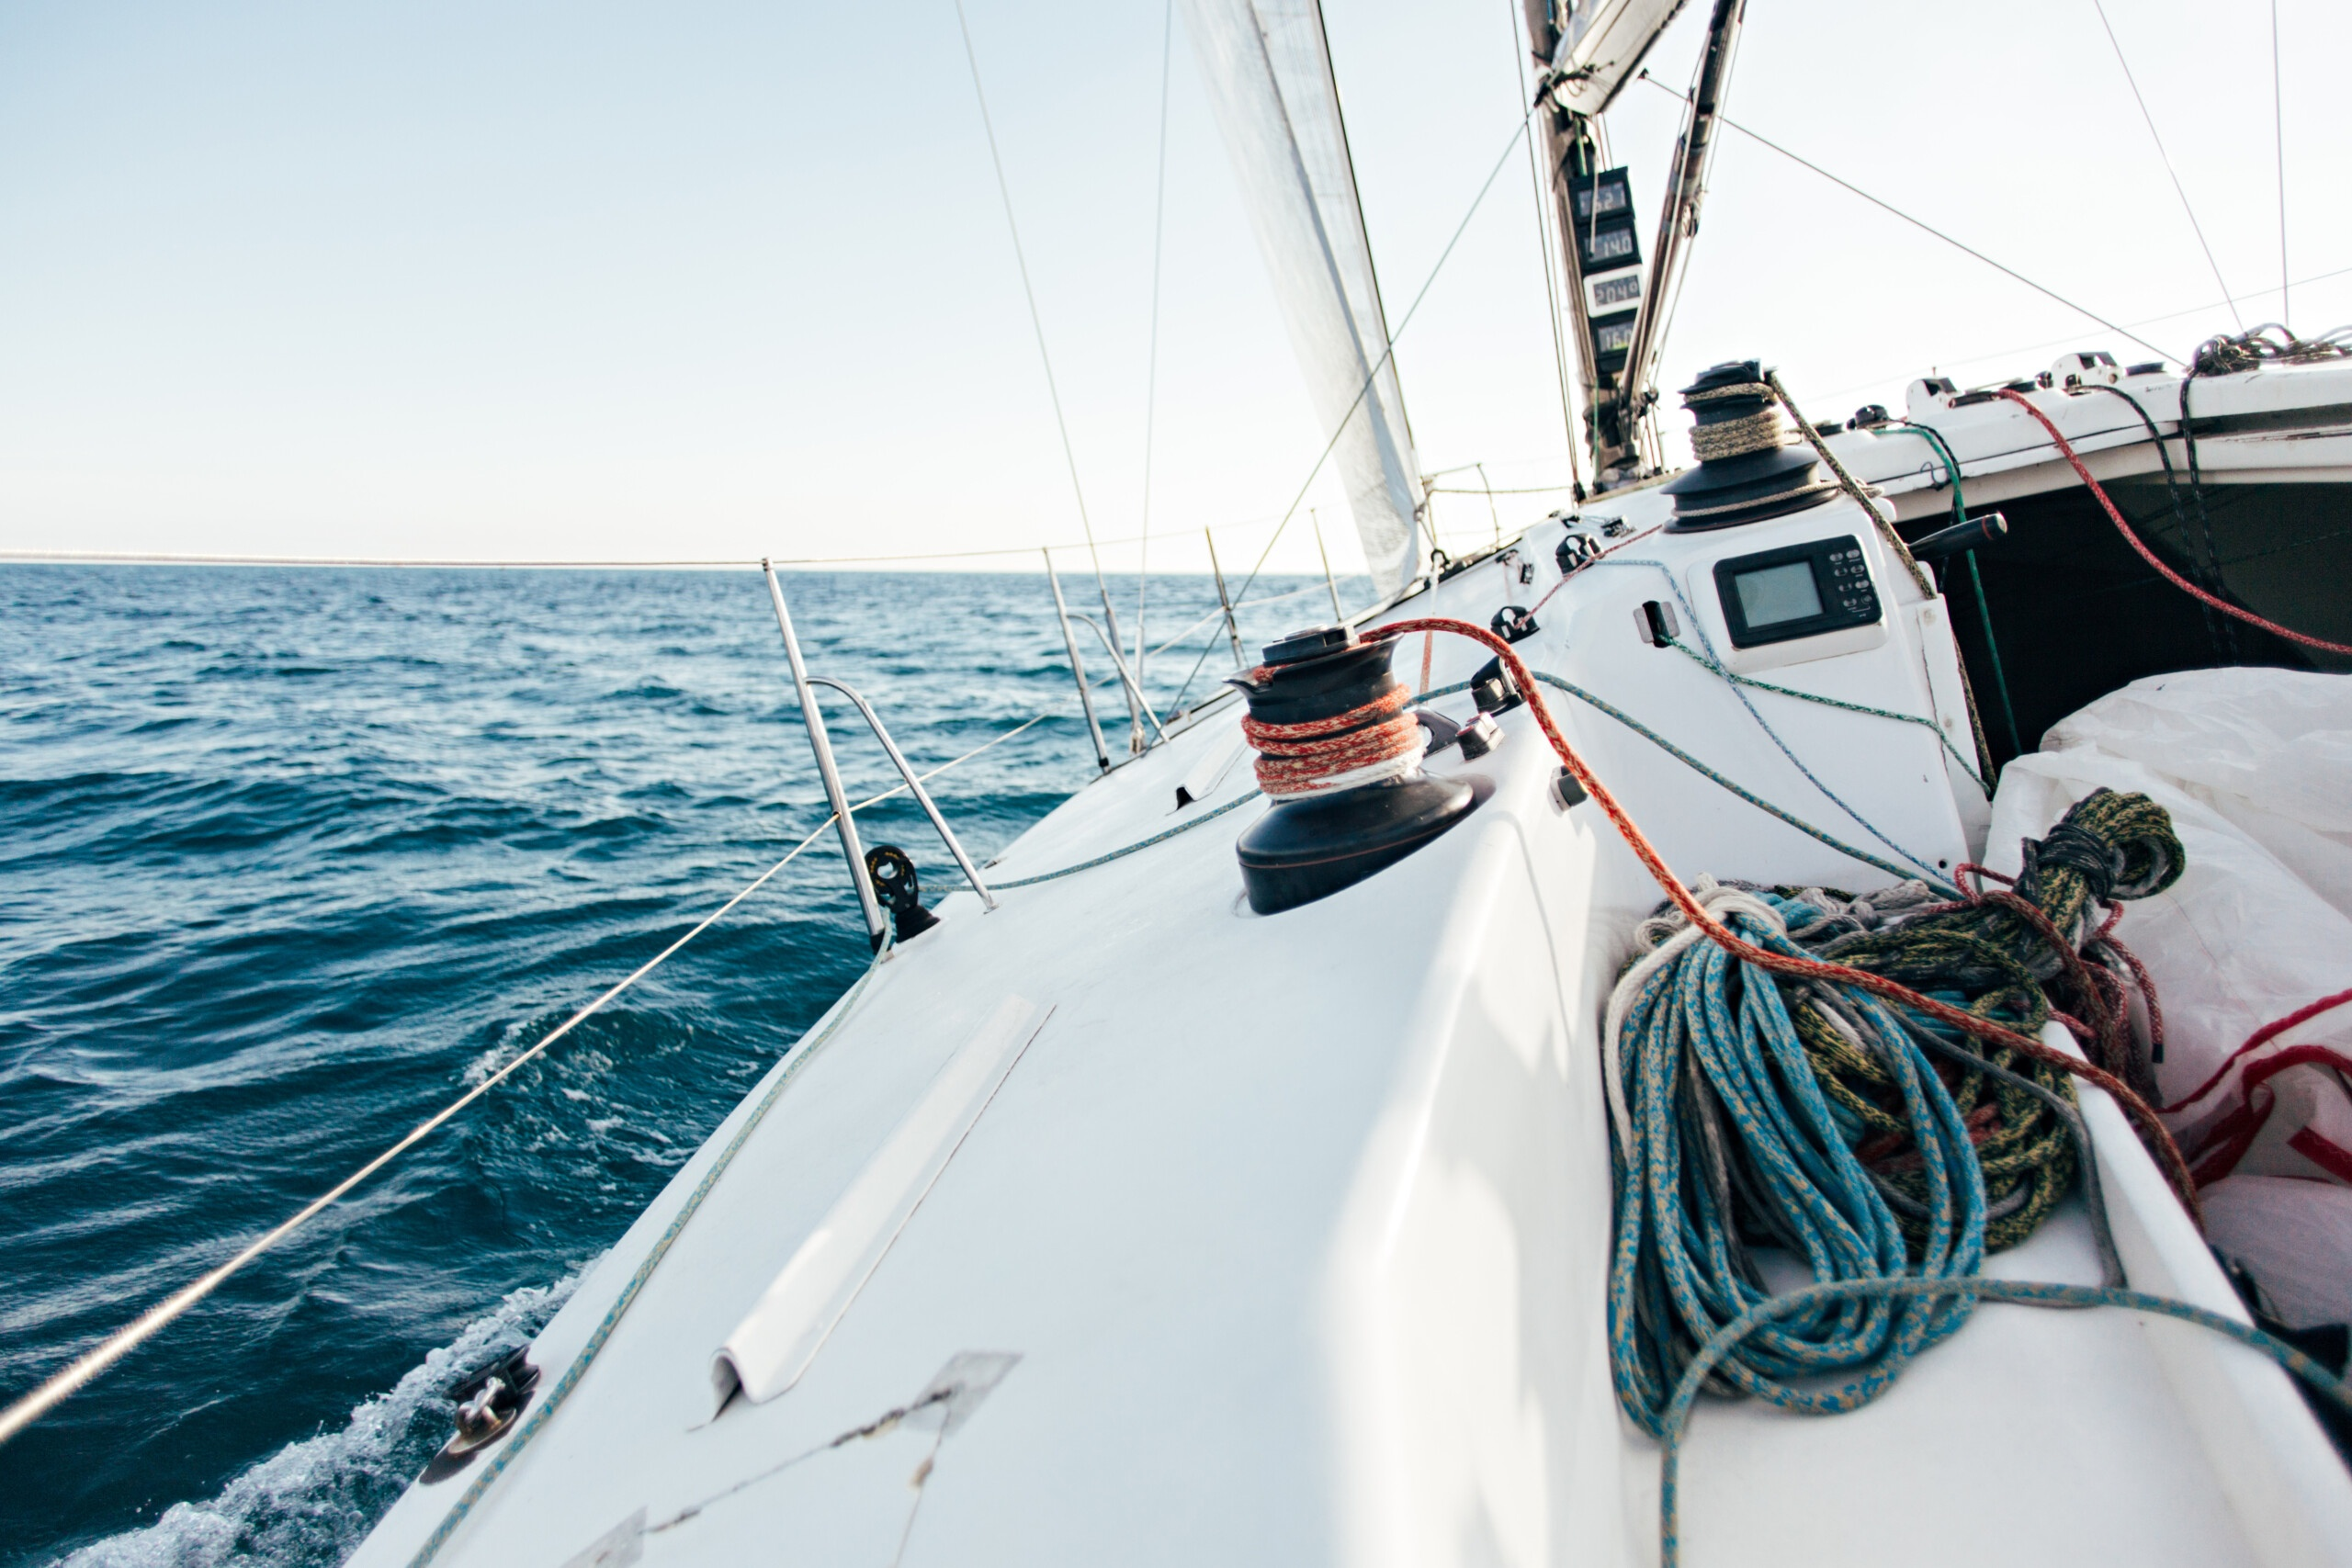 Deck of professional racing yacht leaning in wind